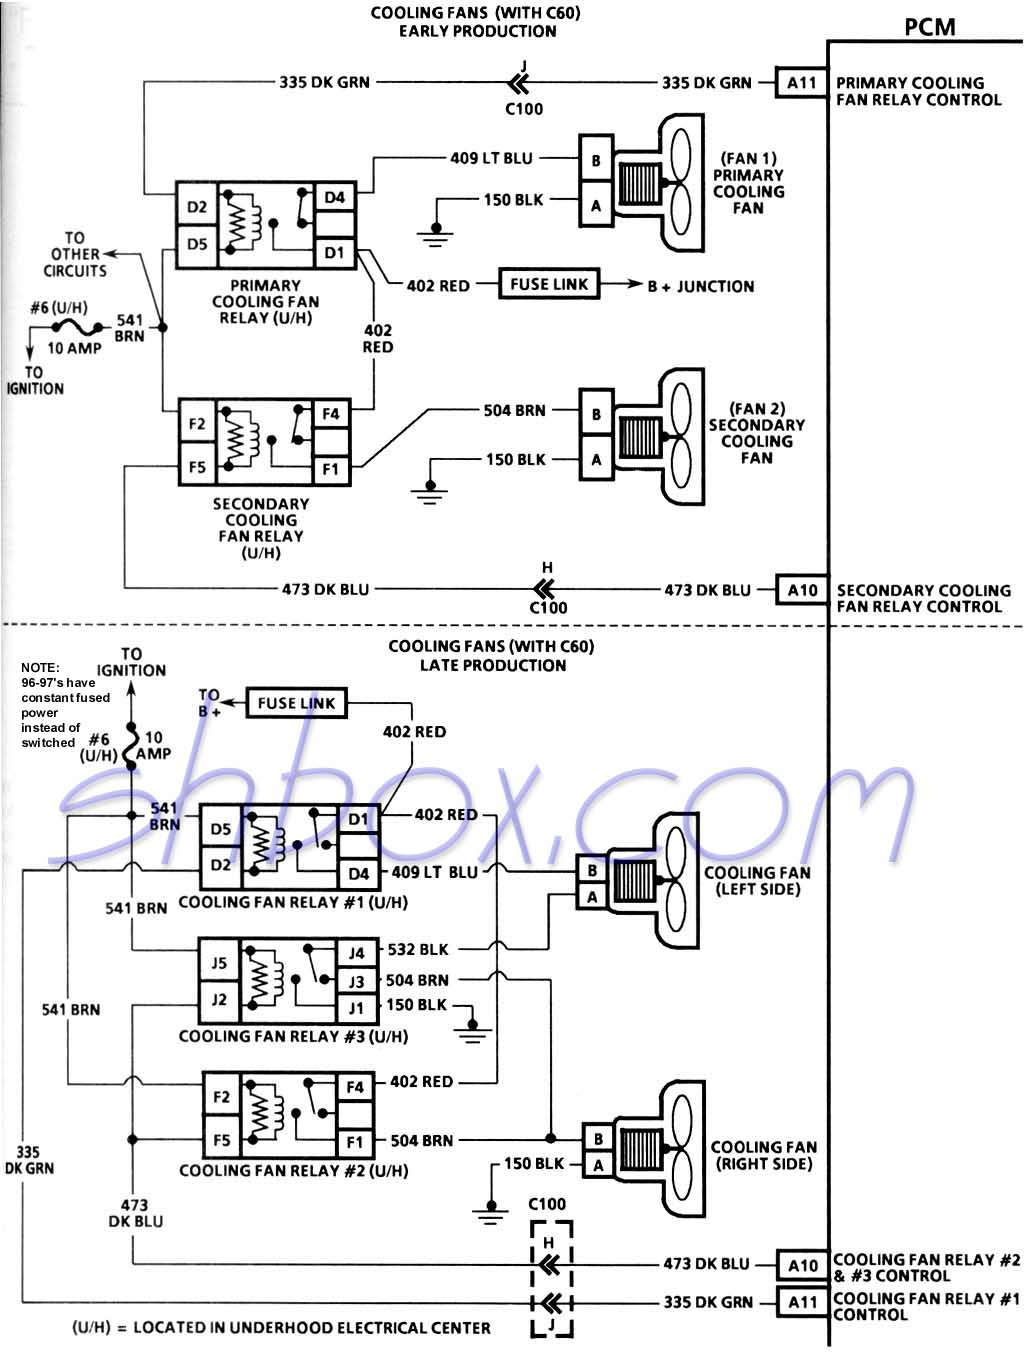 99 Cabrio Fuel Pump Relay Location on 1996 monte carlo wiring diagram